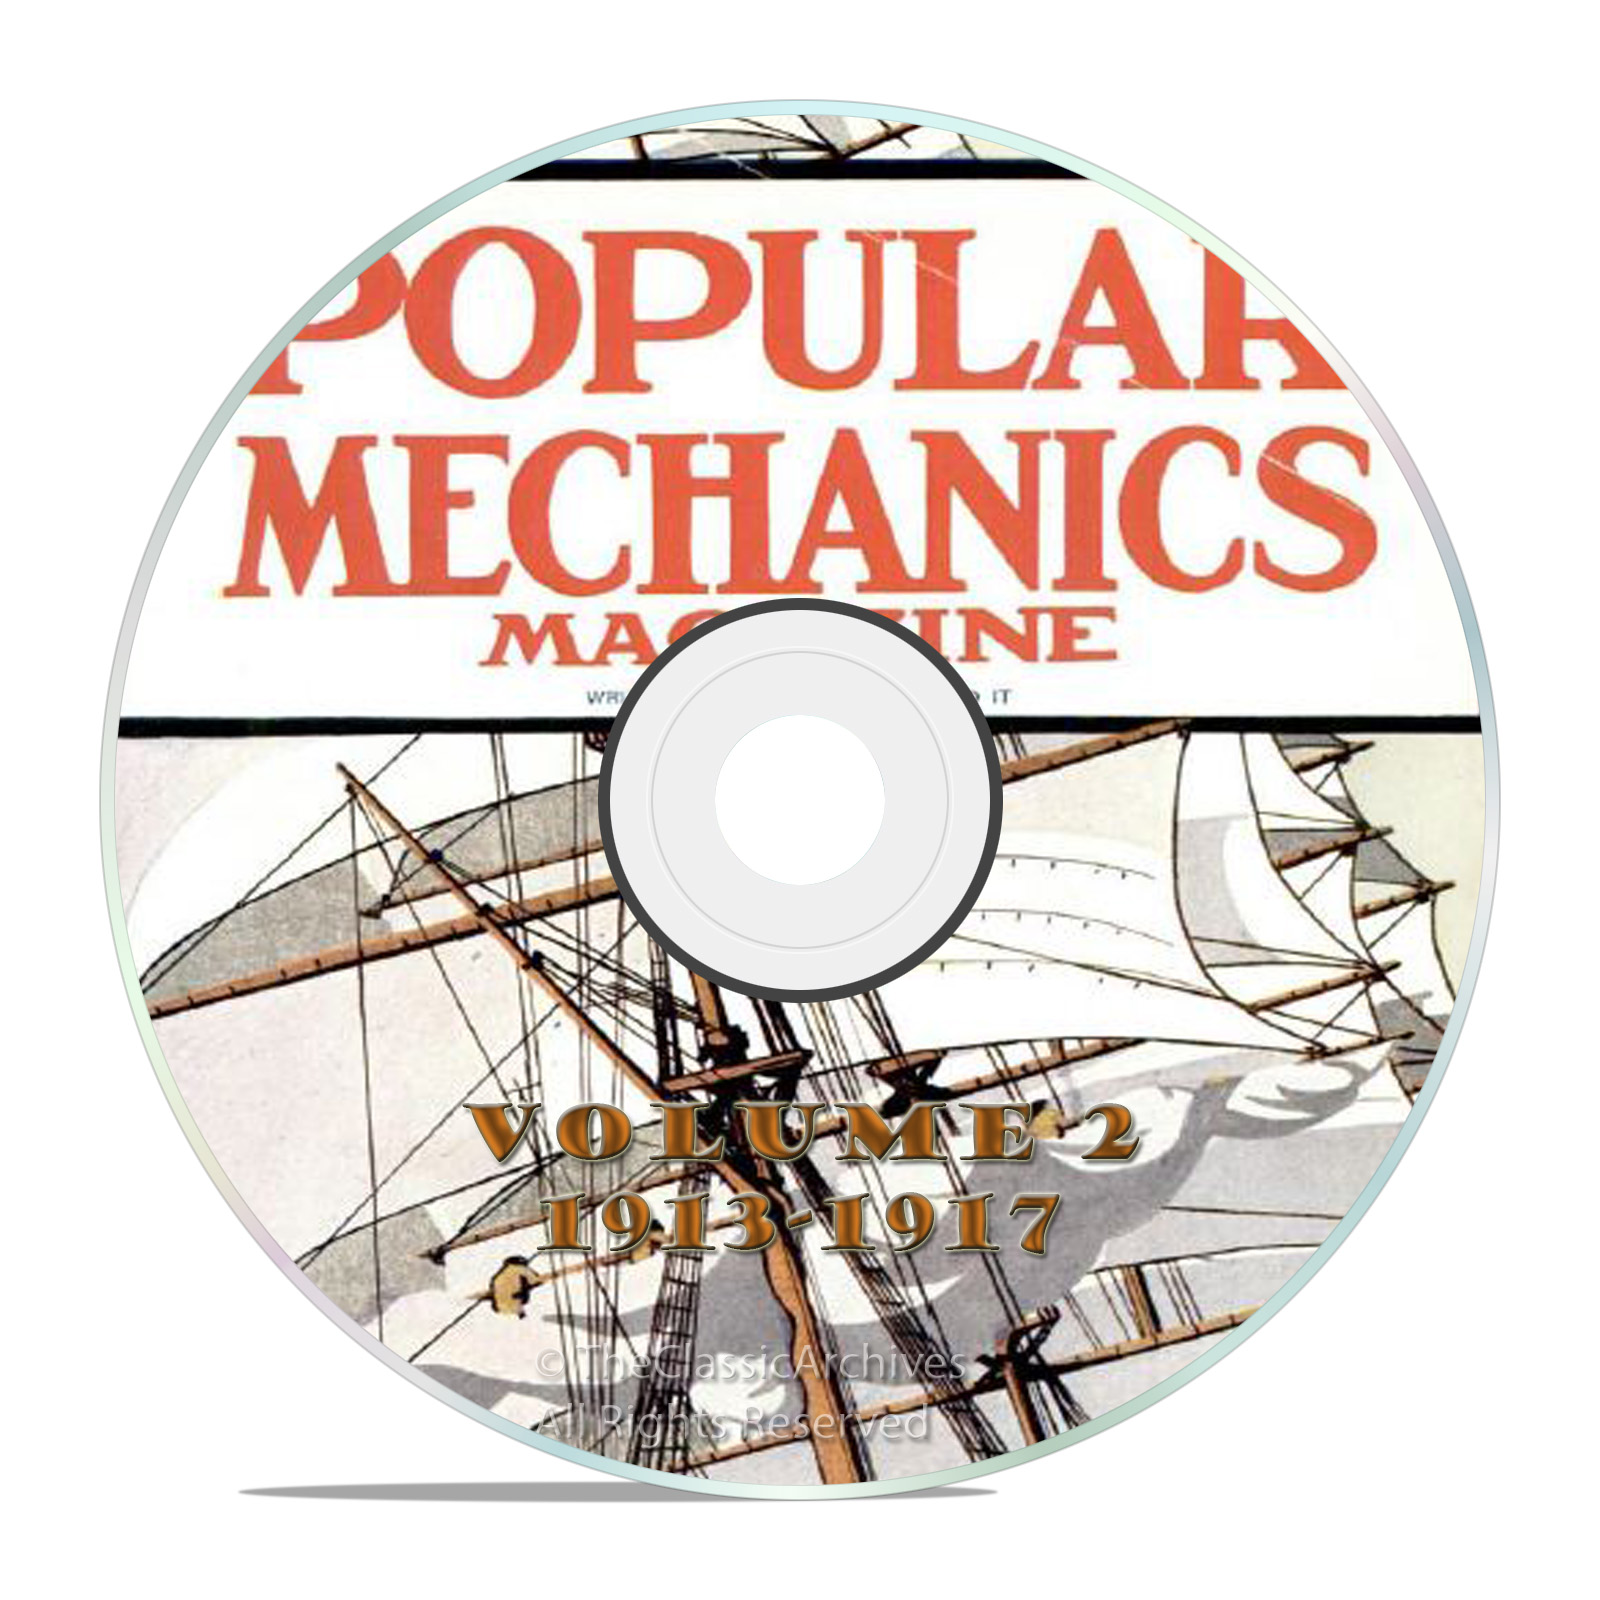 Vintage Popular Mechanics Magazine, Volume 2 DVD, 1913-1917, 48 issues - Click Image to Close